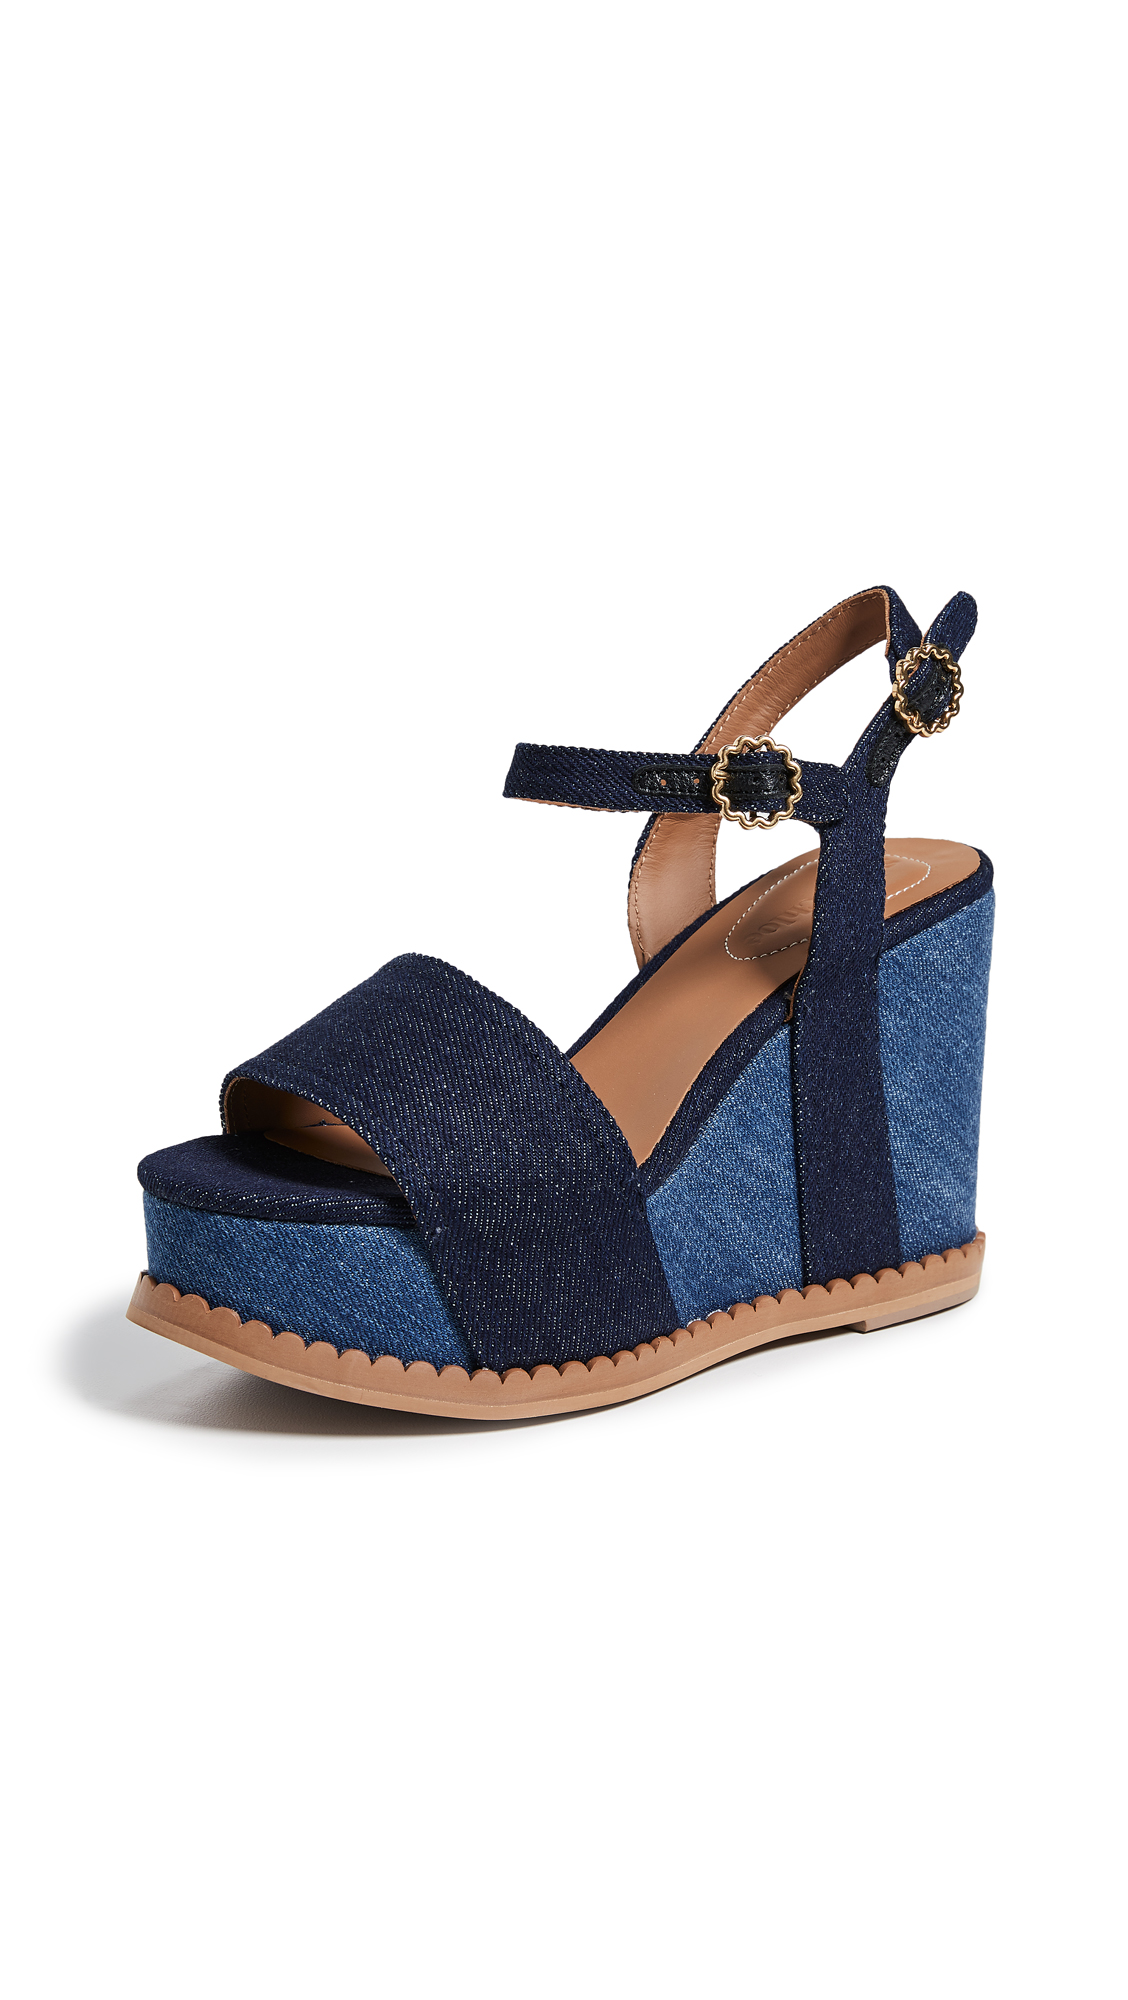 See by Chloe Carrie Super Wedge Sandals - Navy/Denim